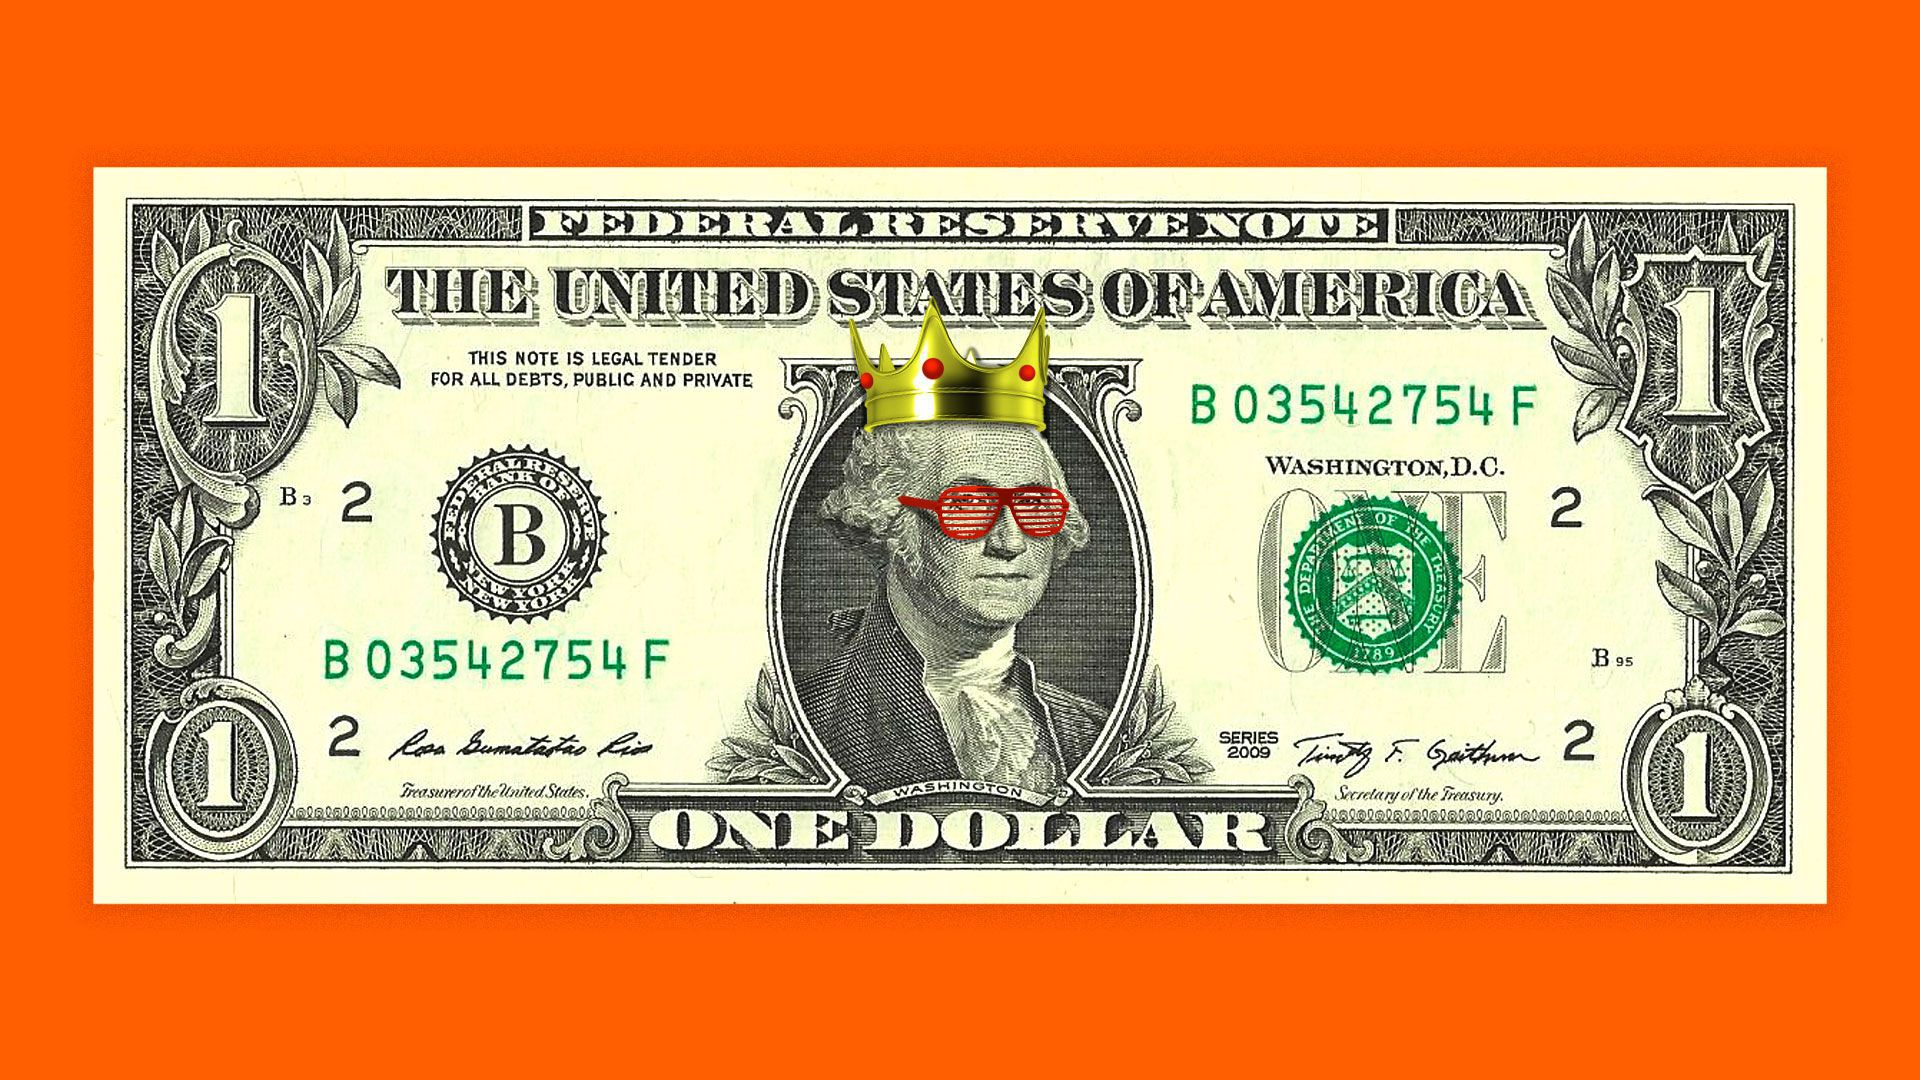 George Washington on the dollar bill wearing a crown and shutter shades